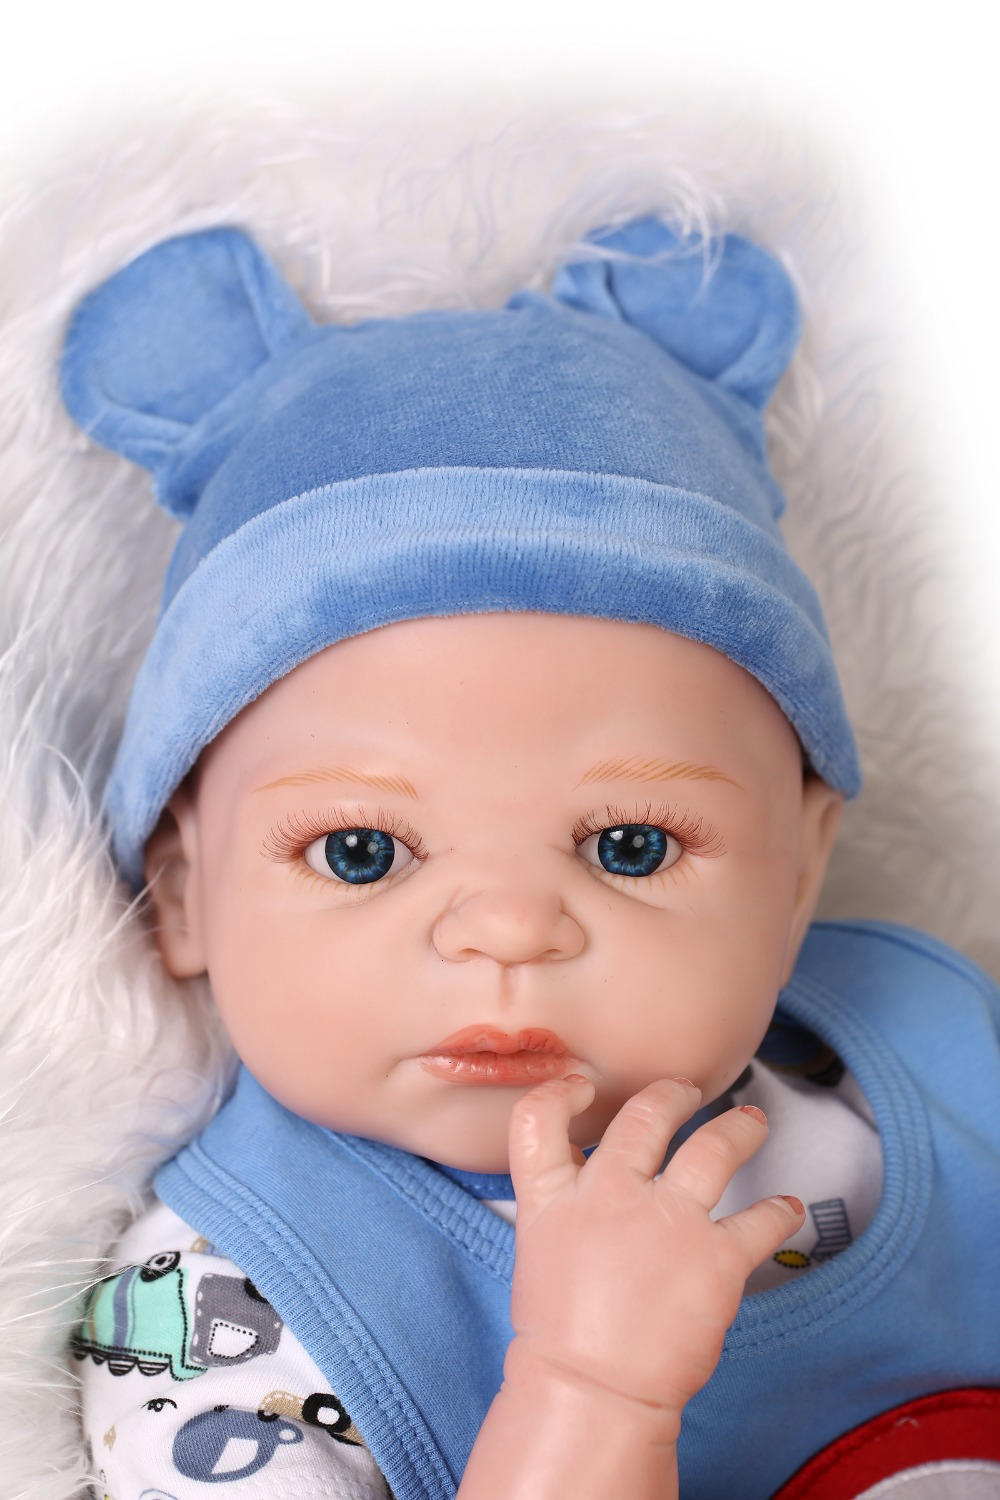 22 inches 55cm silicone baby reborn dolls, lifelike dolls reborn baby boy toy gifts prince brinquedos children's toys!(China (Mainland))